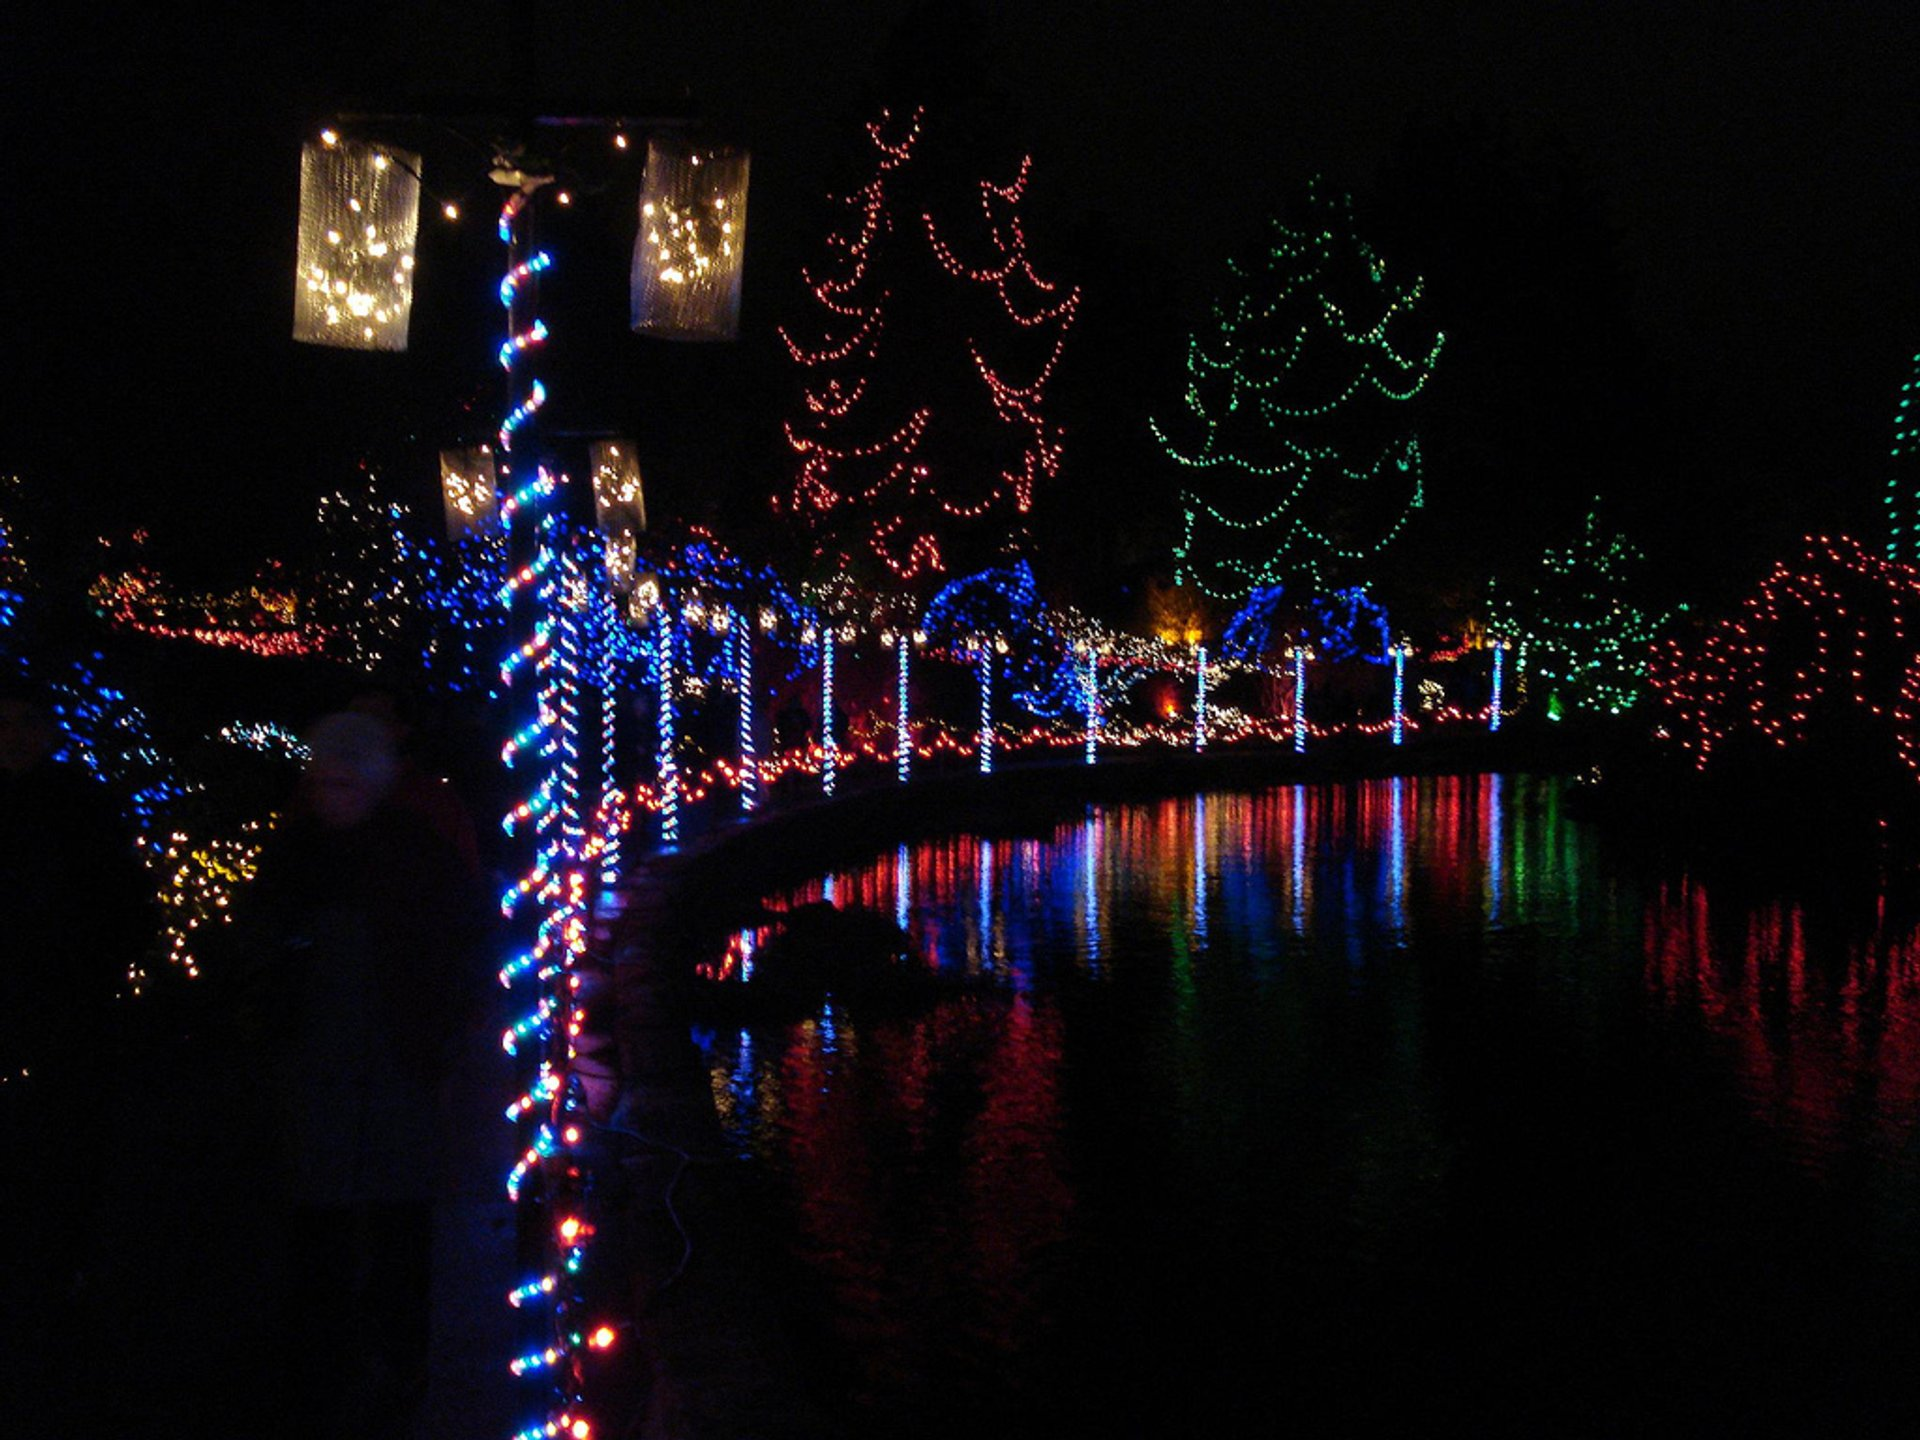 Best time to see VanDusen Festival of Lights in Vancouver 2020